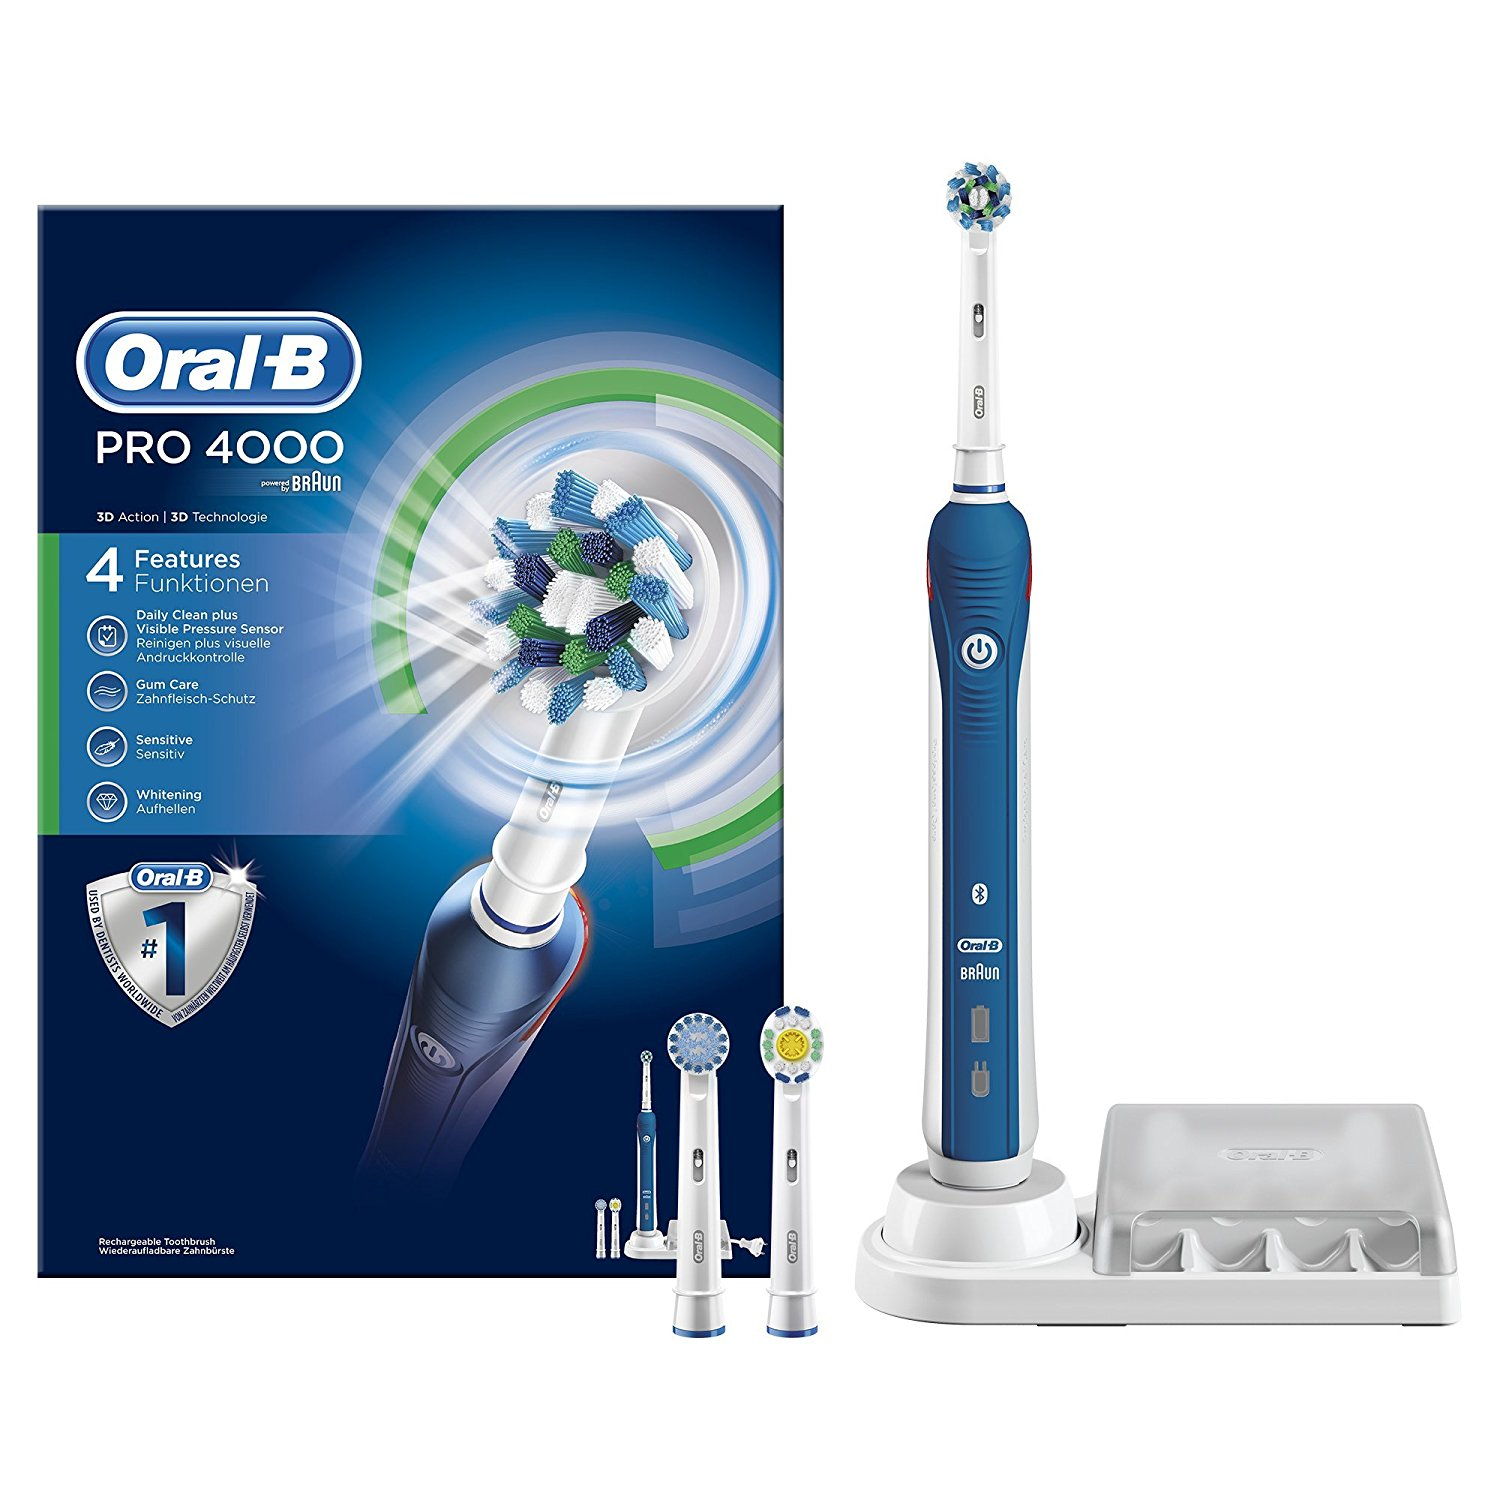 Oral-B Pro 4000 Electric ToothBrush